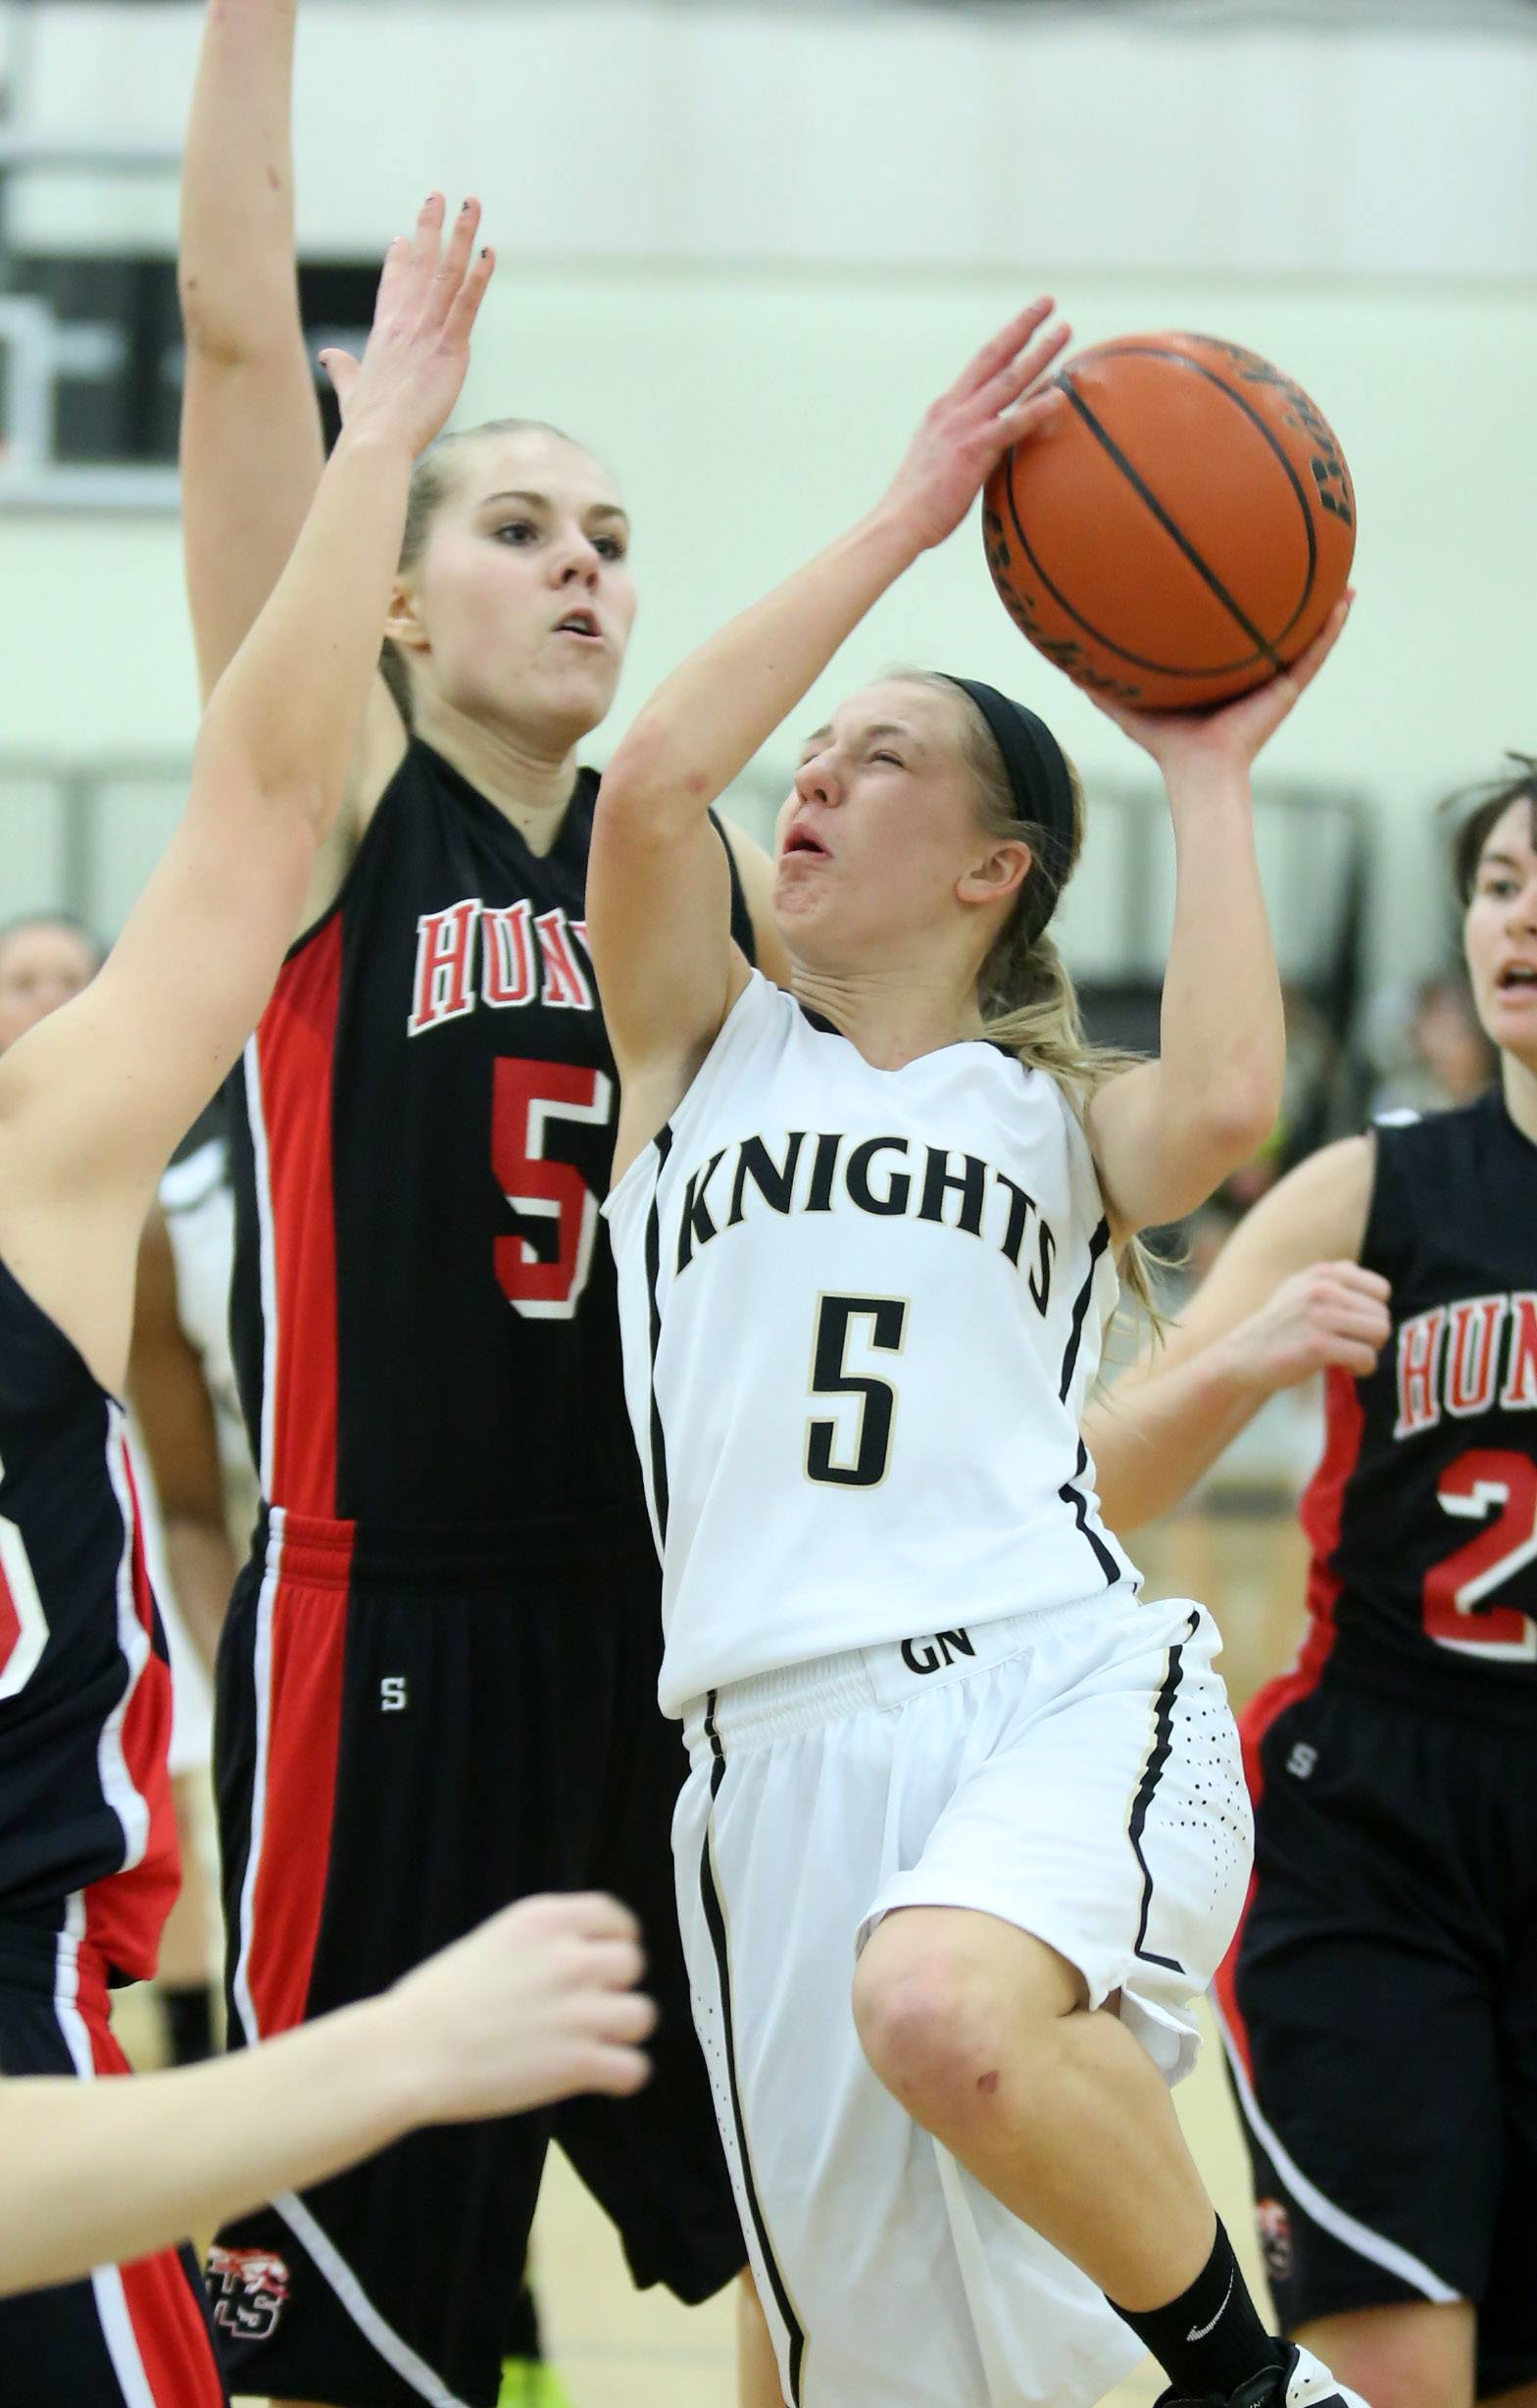 Grayslake North guard Kendall Detweiler shoots against Huntley defender Ali Andrews at Grayslake North on Friday.